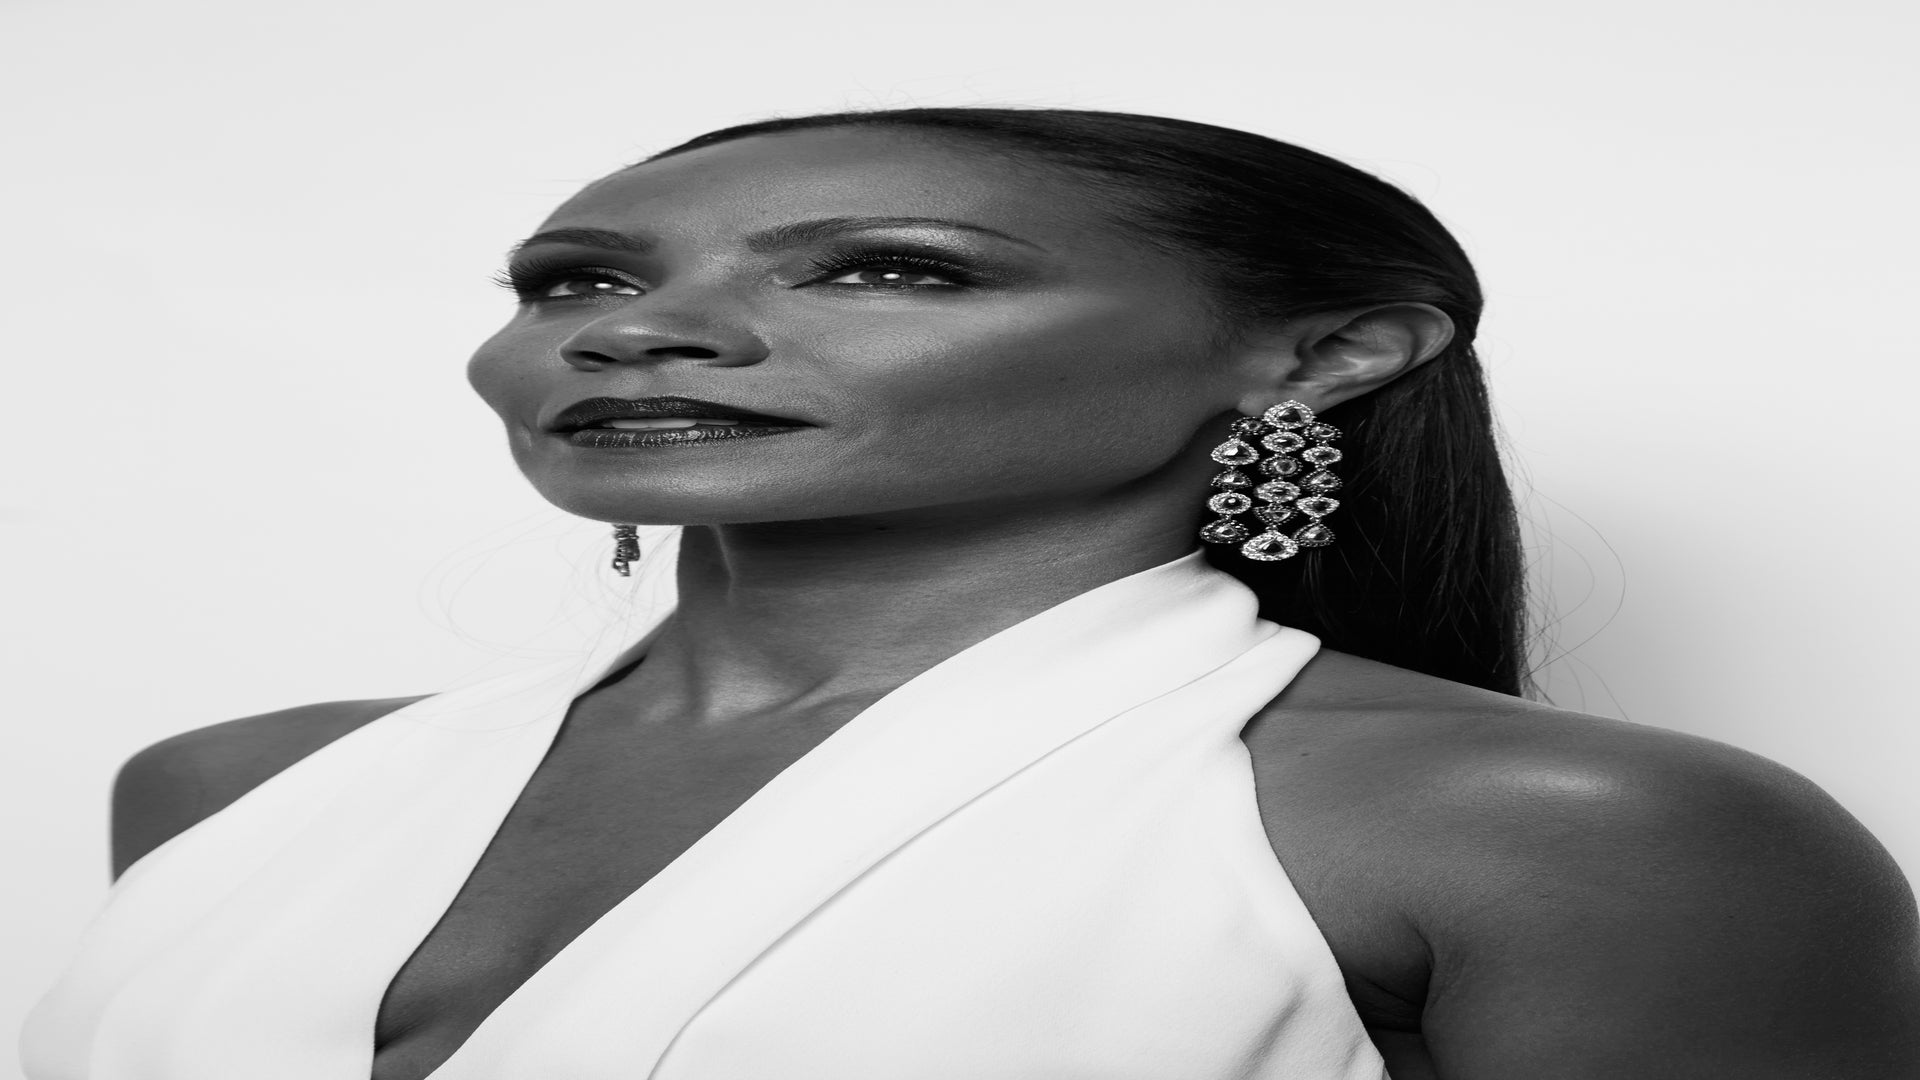 The Quick Read: Jada Pinkett Smith Shares Previous Suicidal Thoughts